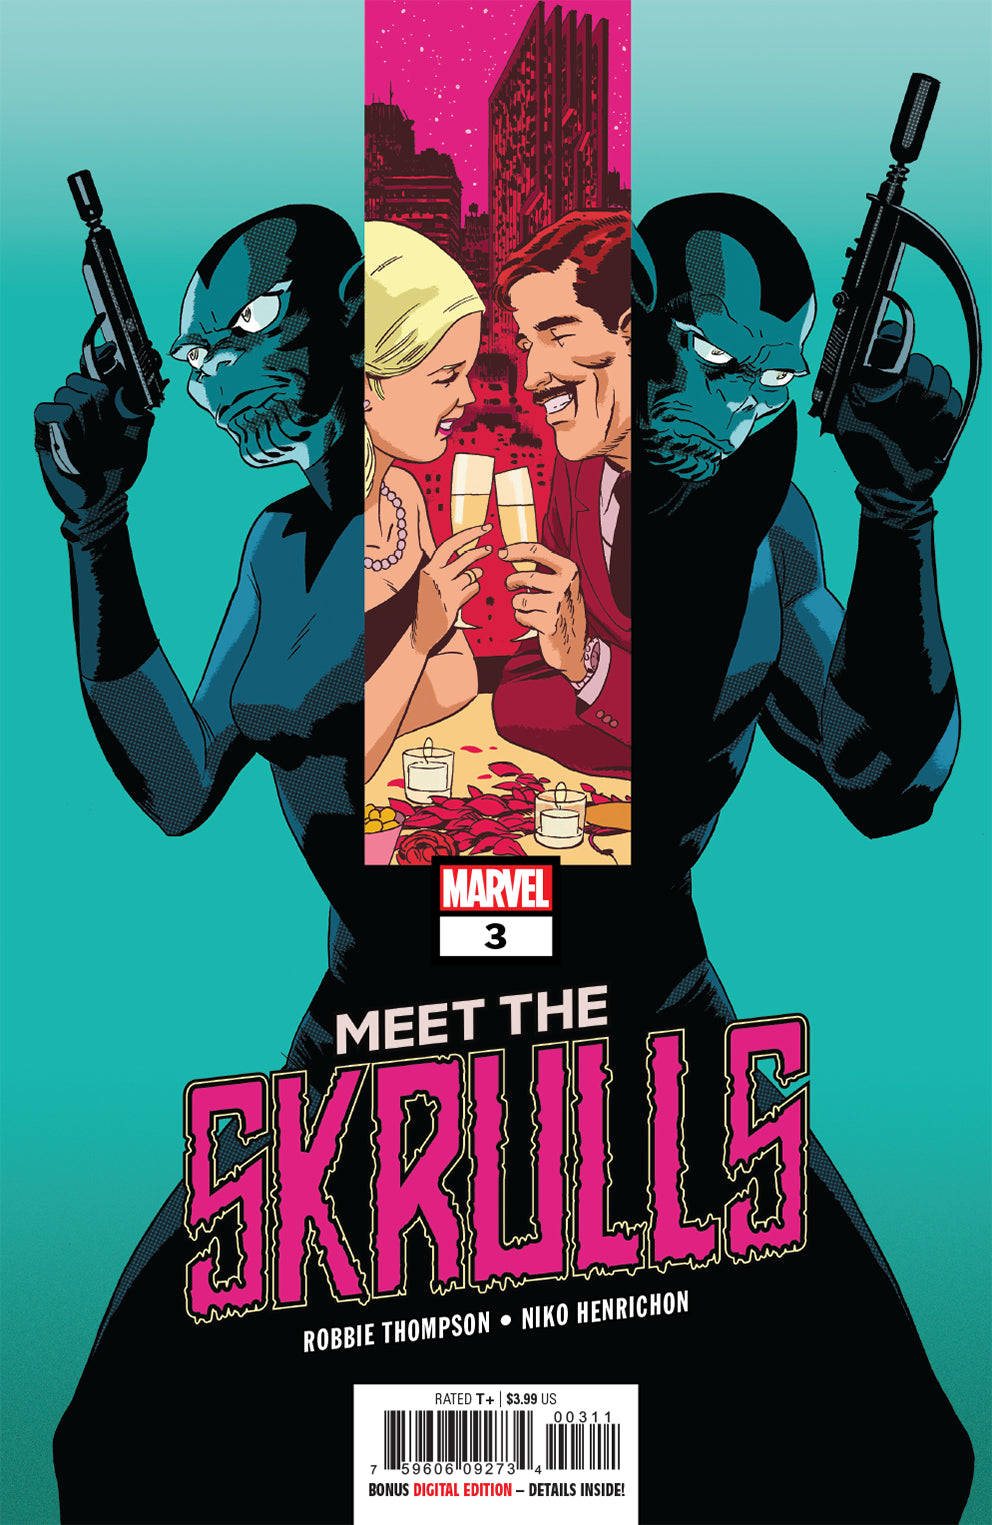 MEET THE SKRULLS #3 (OF 5)